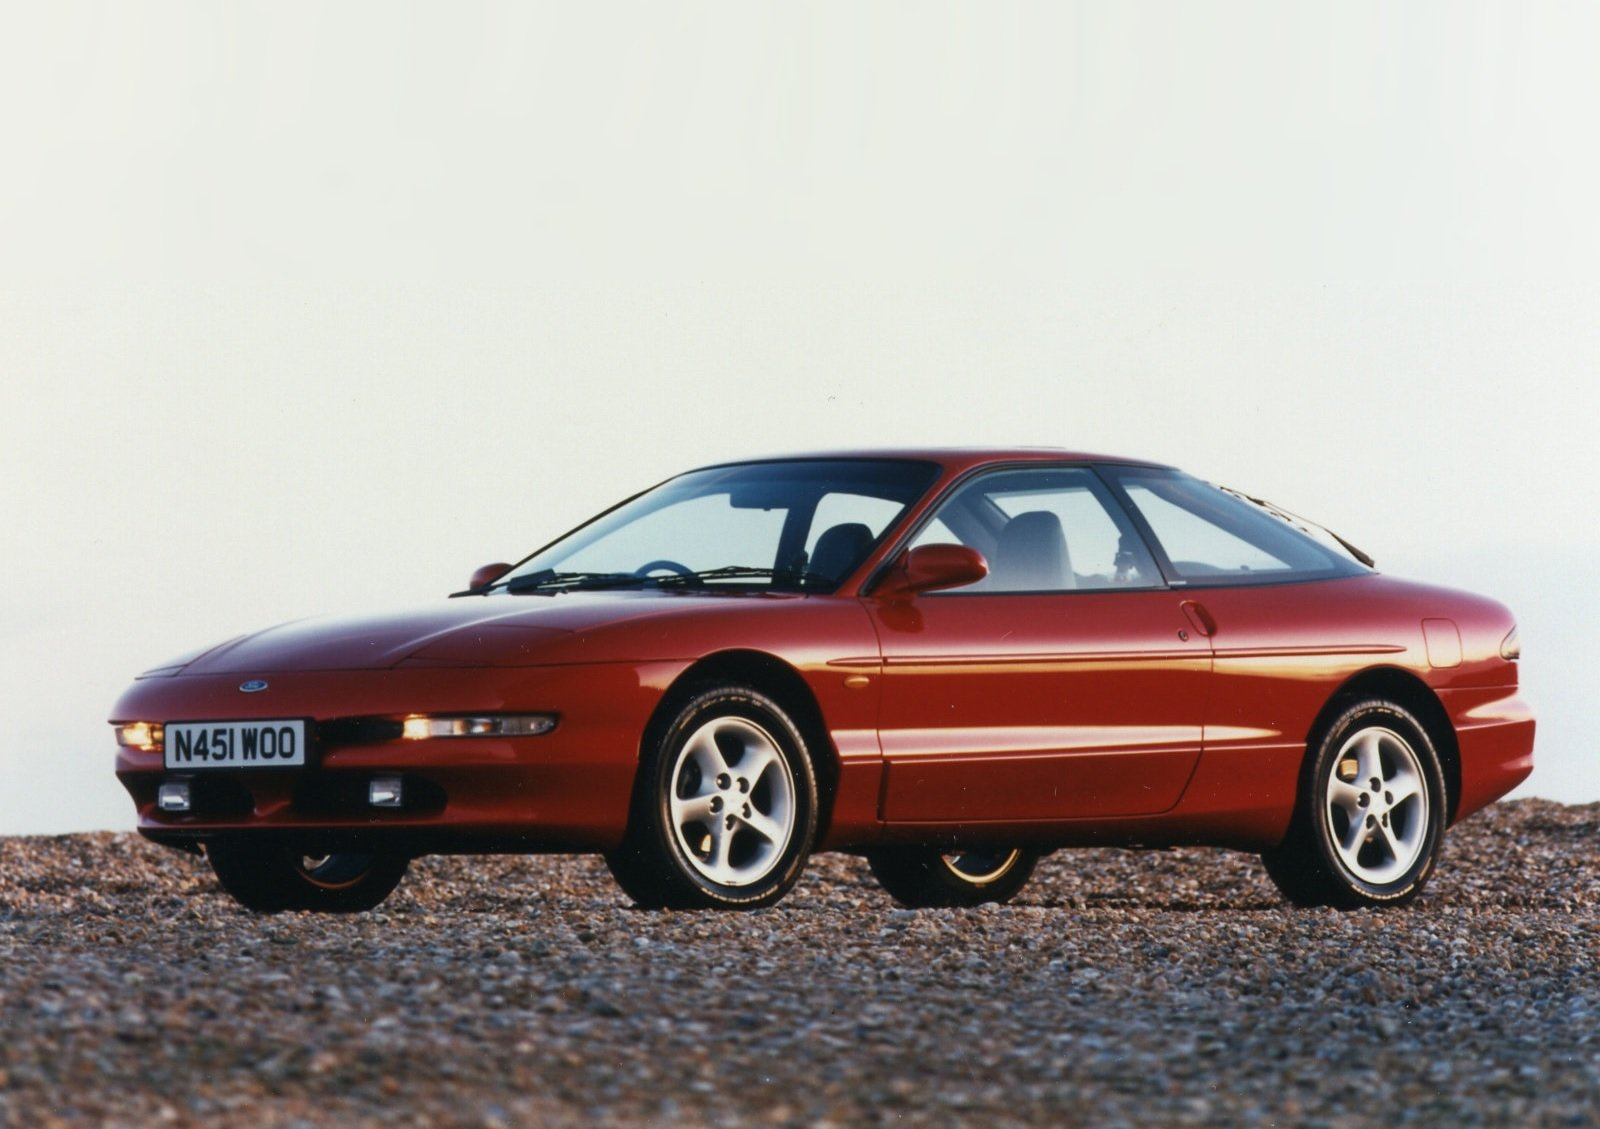 Ford Probe front view